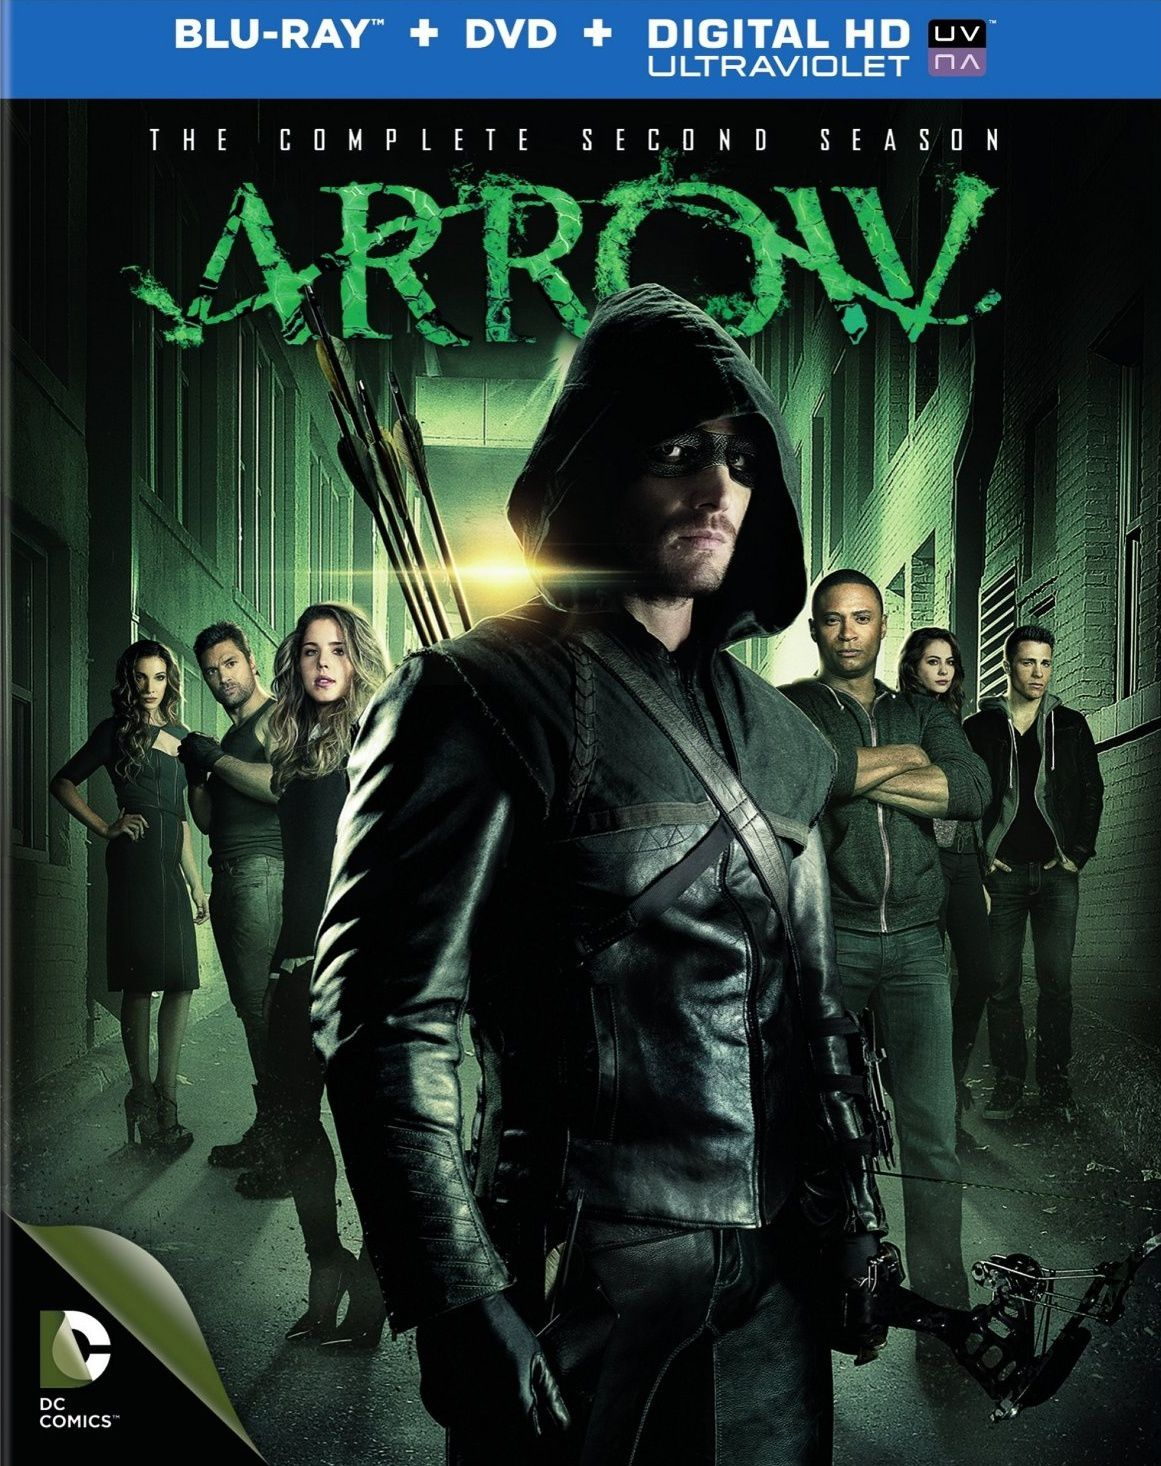 Arrow saison 2 en dvd/blu-ray/digital ultraviolet